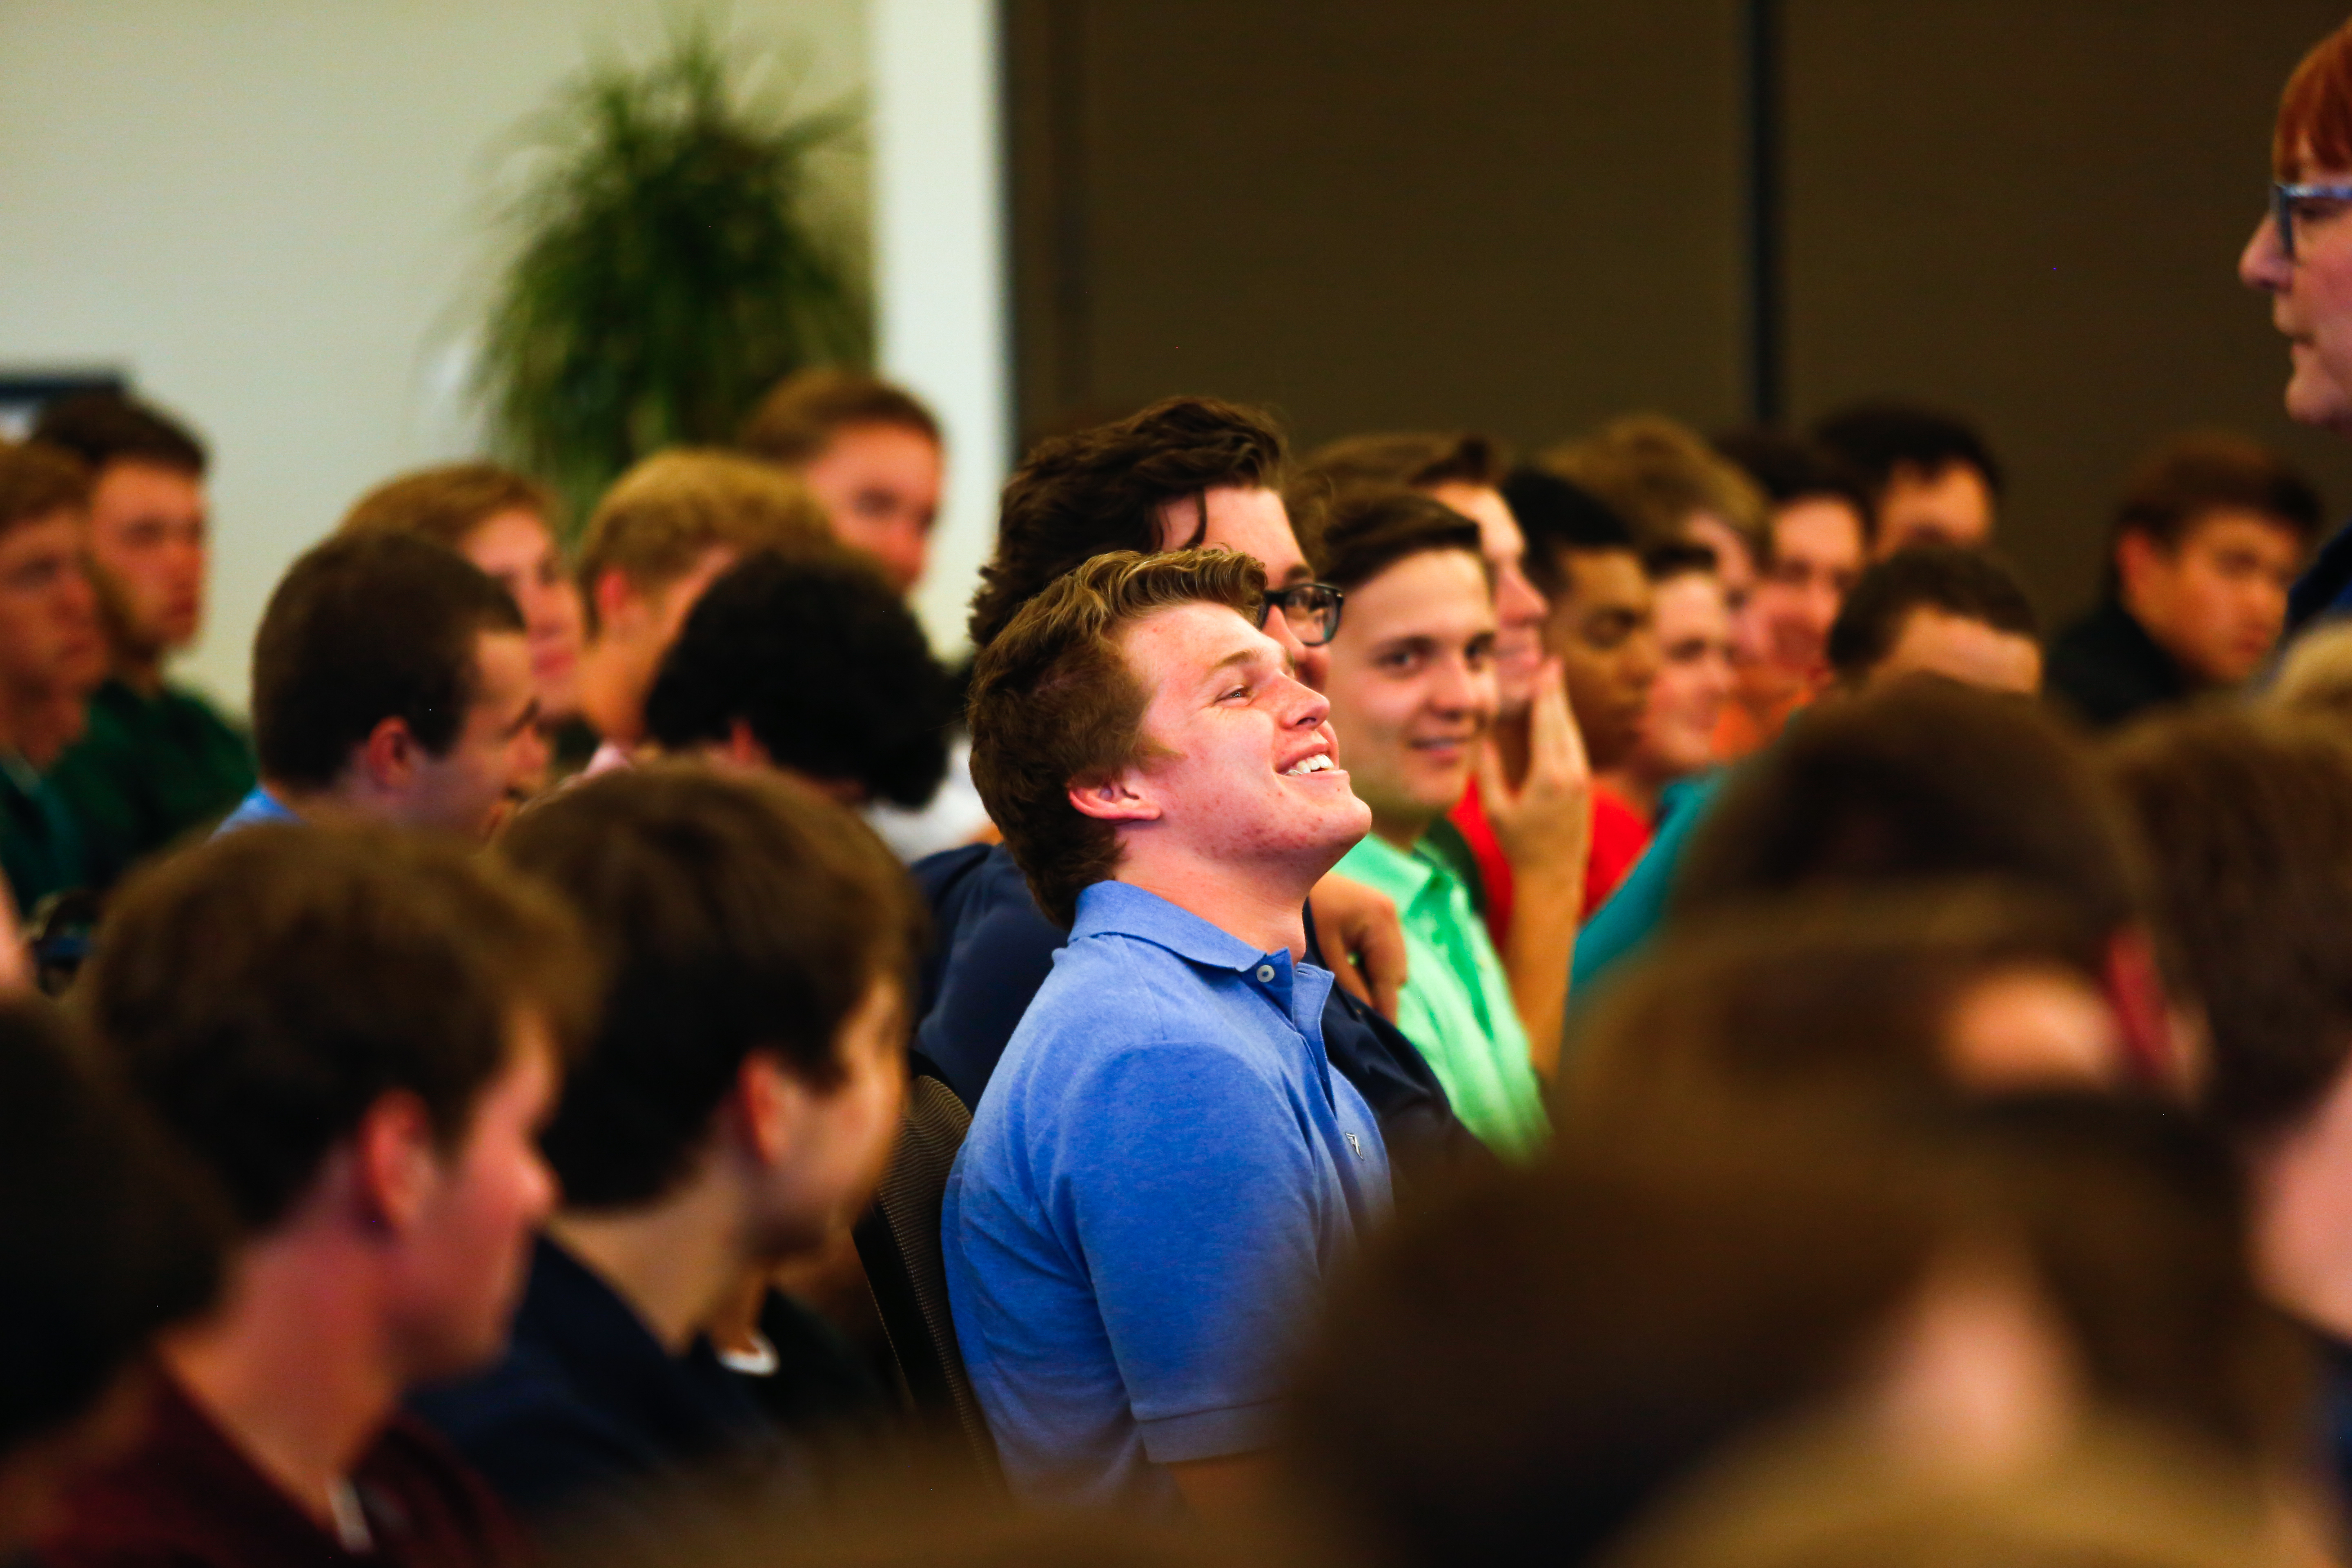 New fraternity members being education on fraternity values.